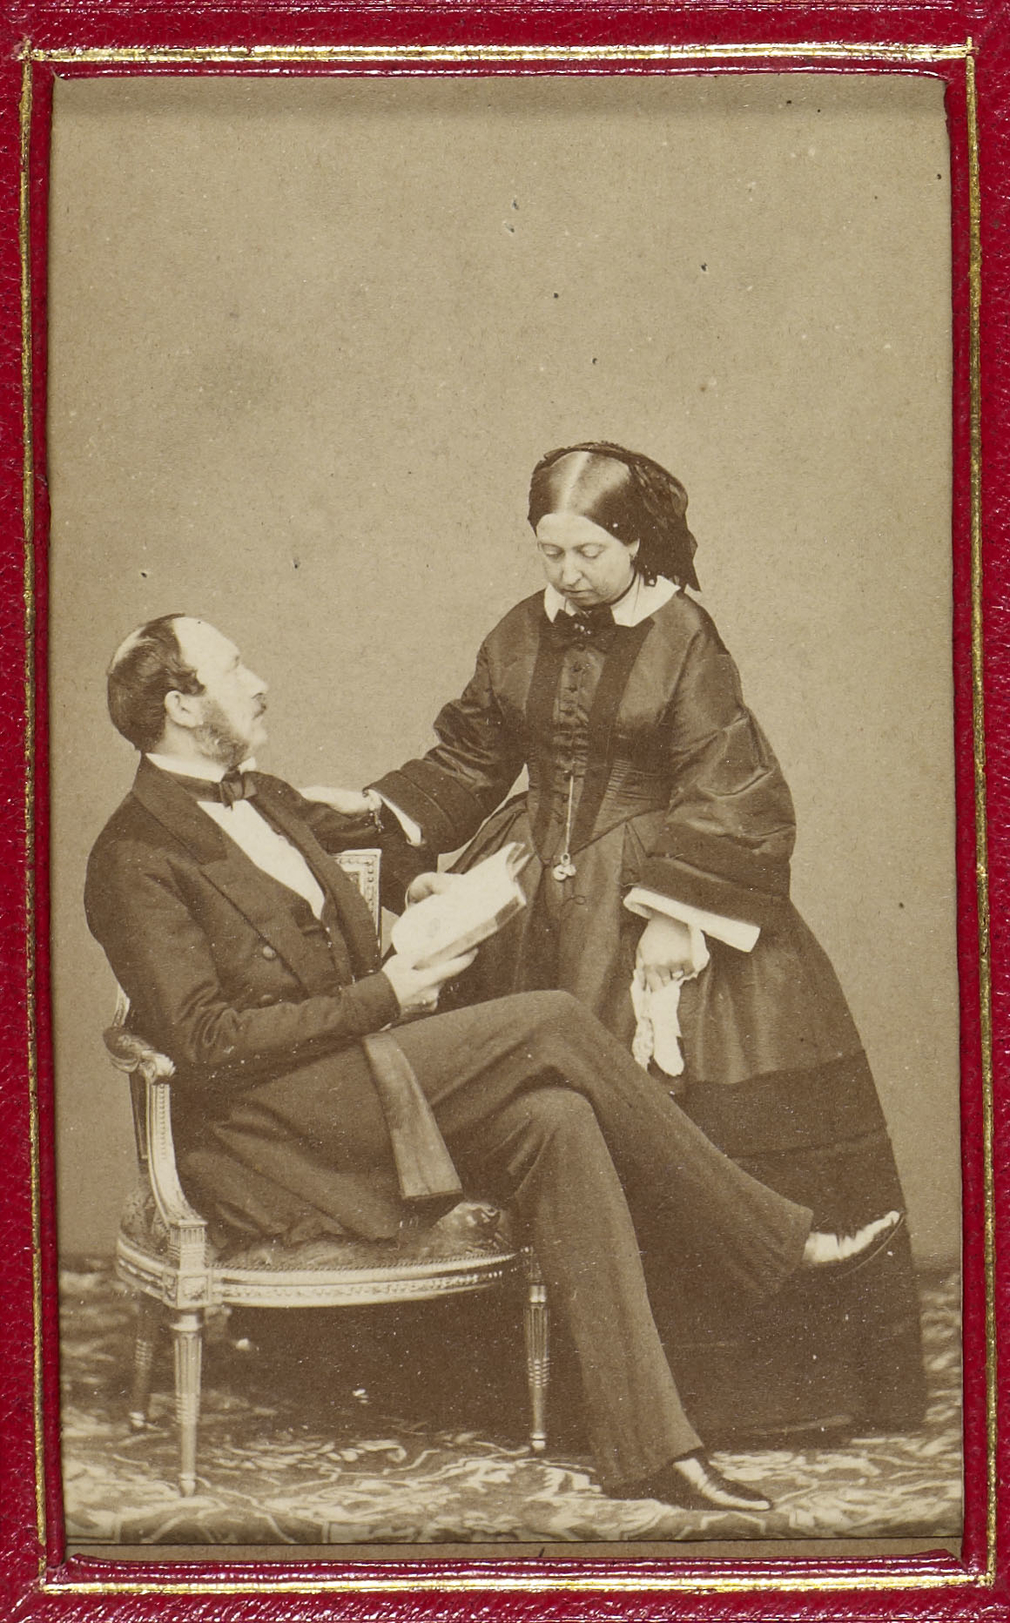 Carte-de-visite photograph of Queen Victoria (1819-1901) and Prince Albert, Prince Consort (1819-61). The Queen stands and looks down. Prince Albert is seated, facing right, and holds a book. He gazes up at Queen Victoria.